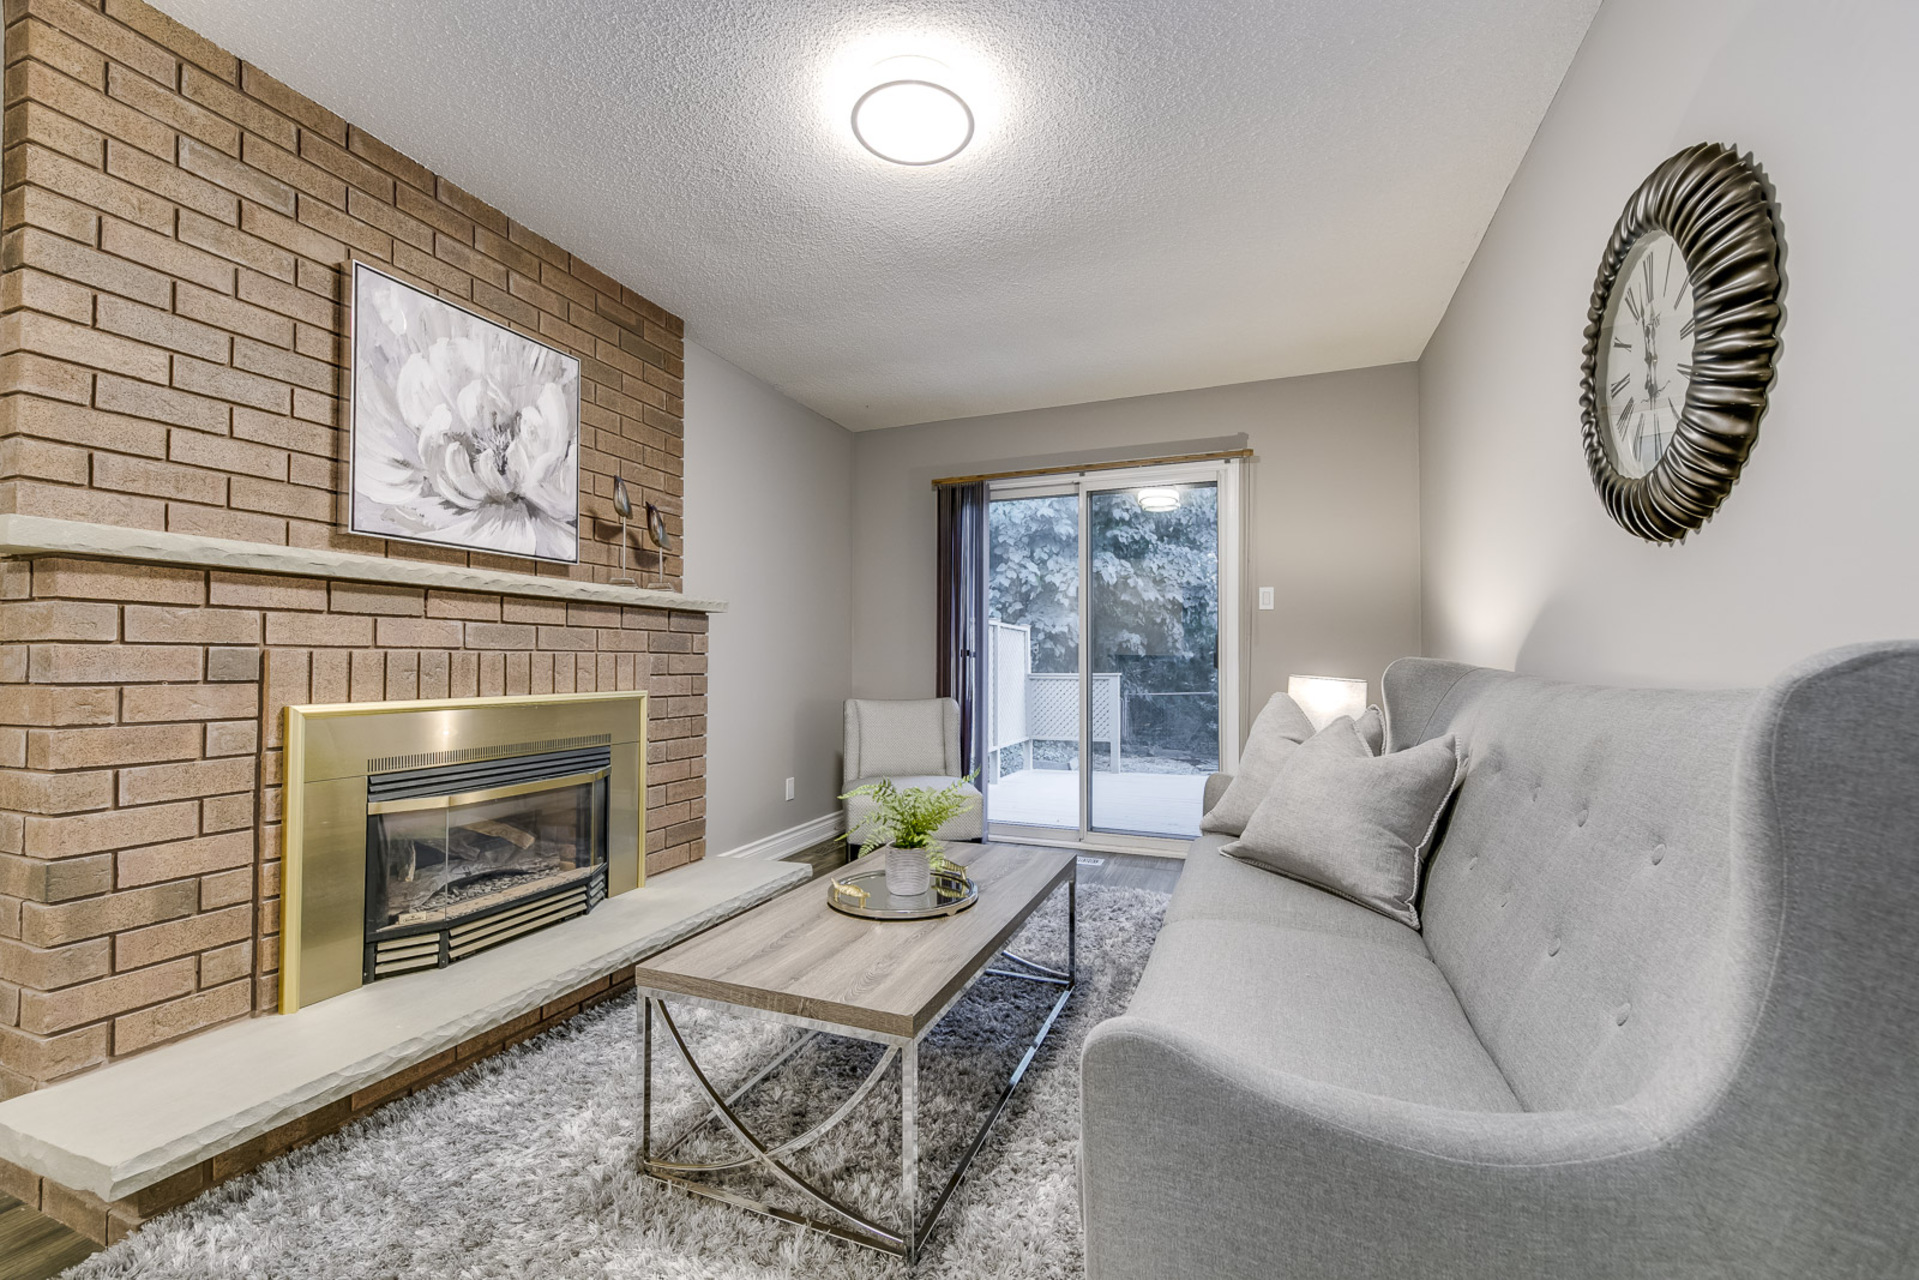 mls-14 at 4246 Wakefield Crescent, Creditview, Mississauga